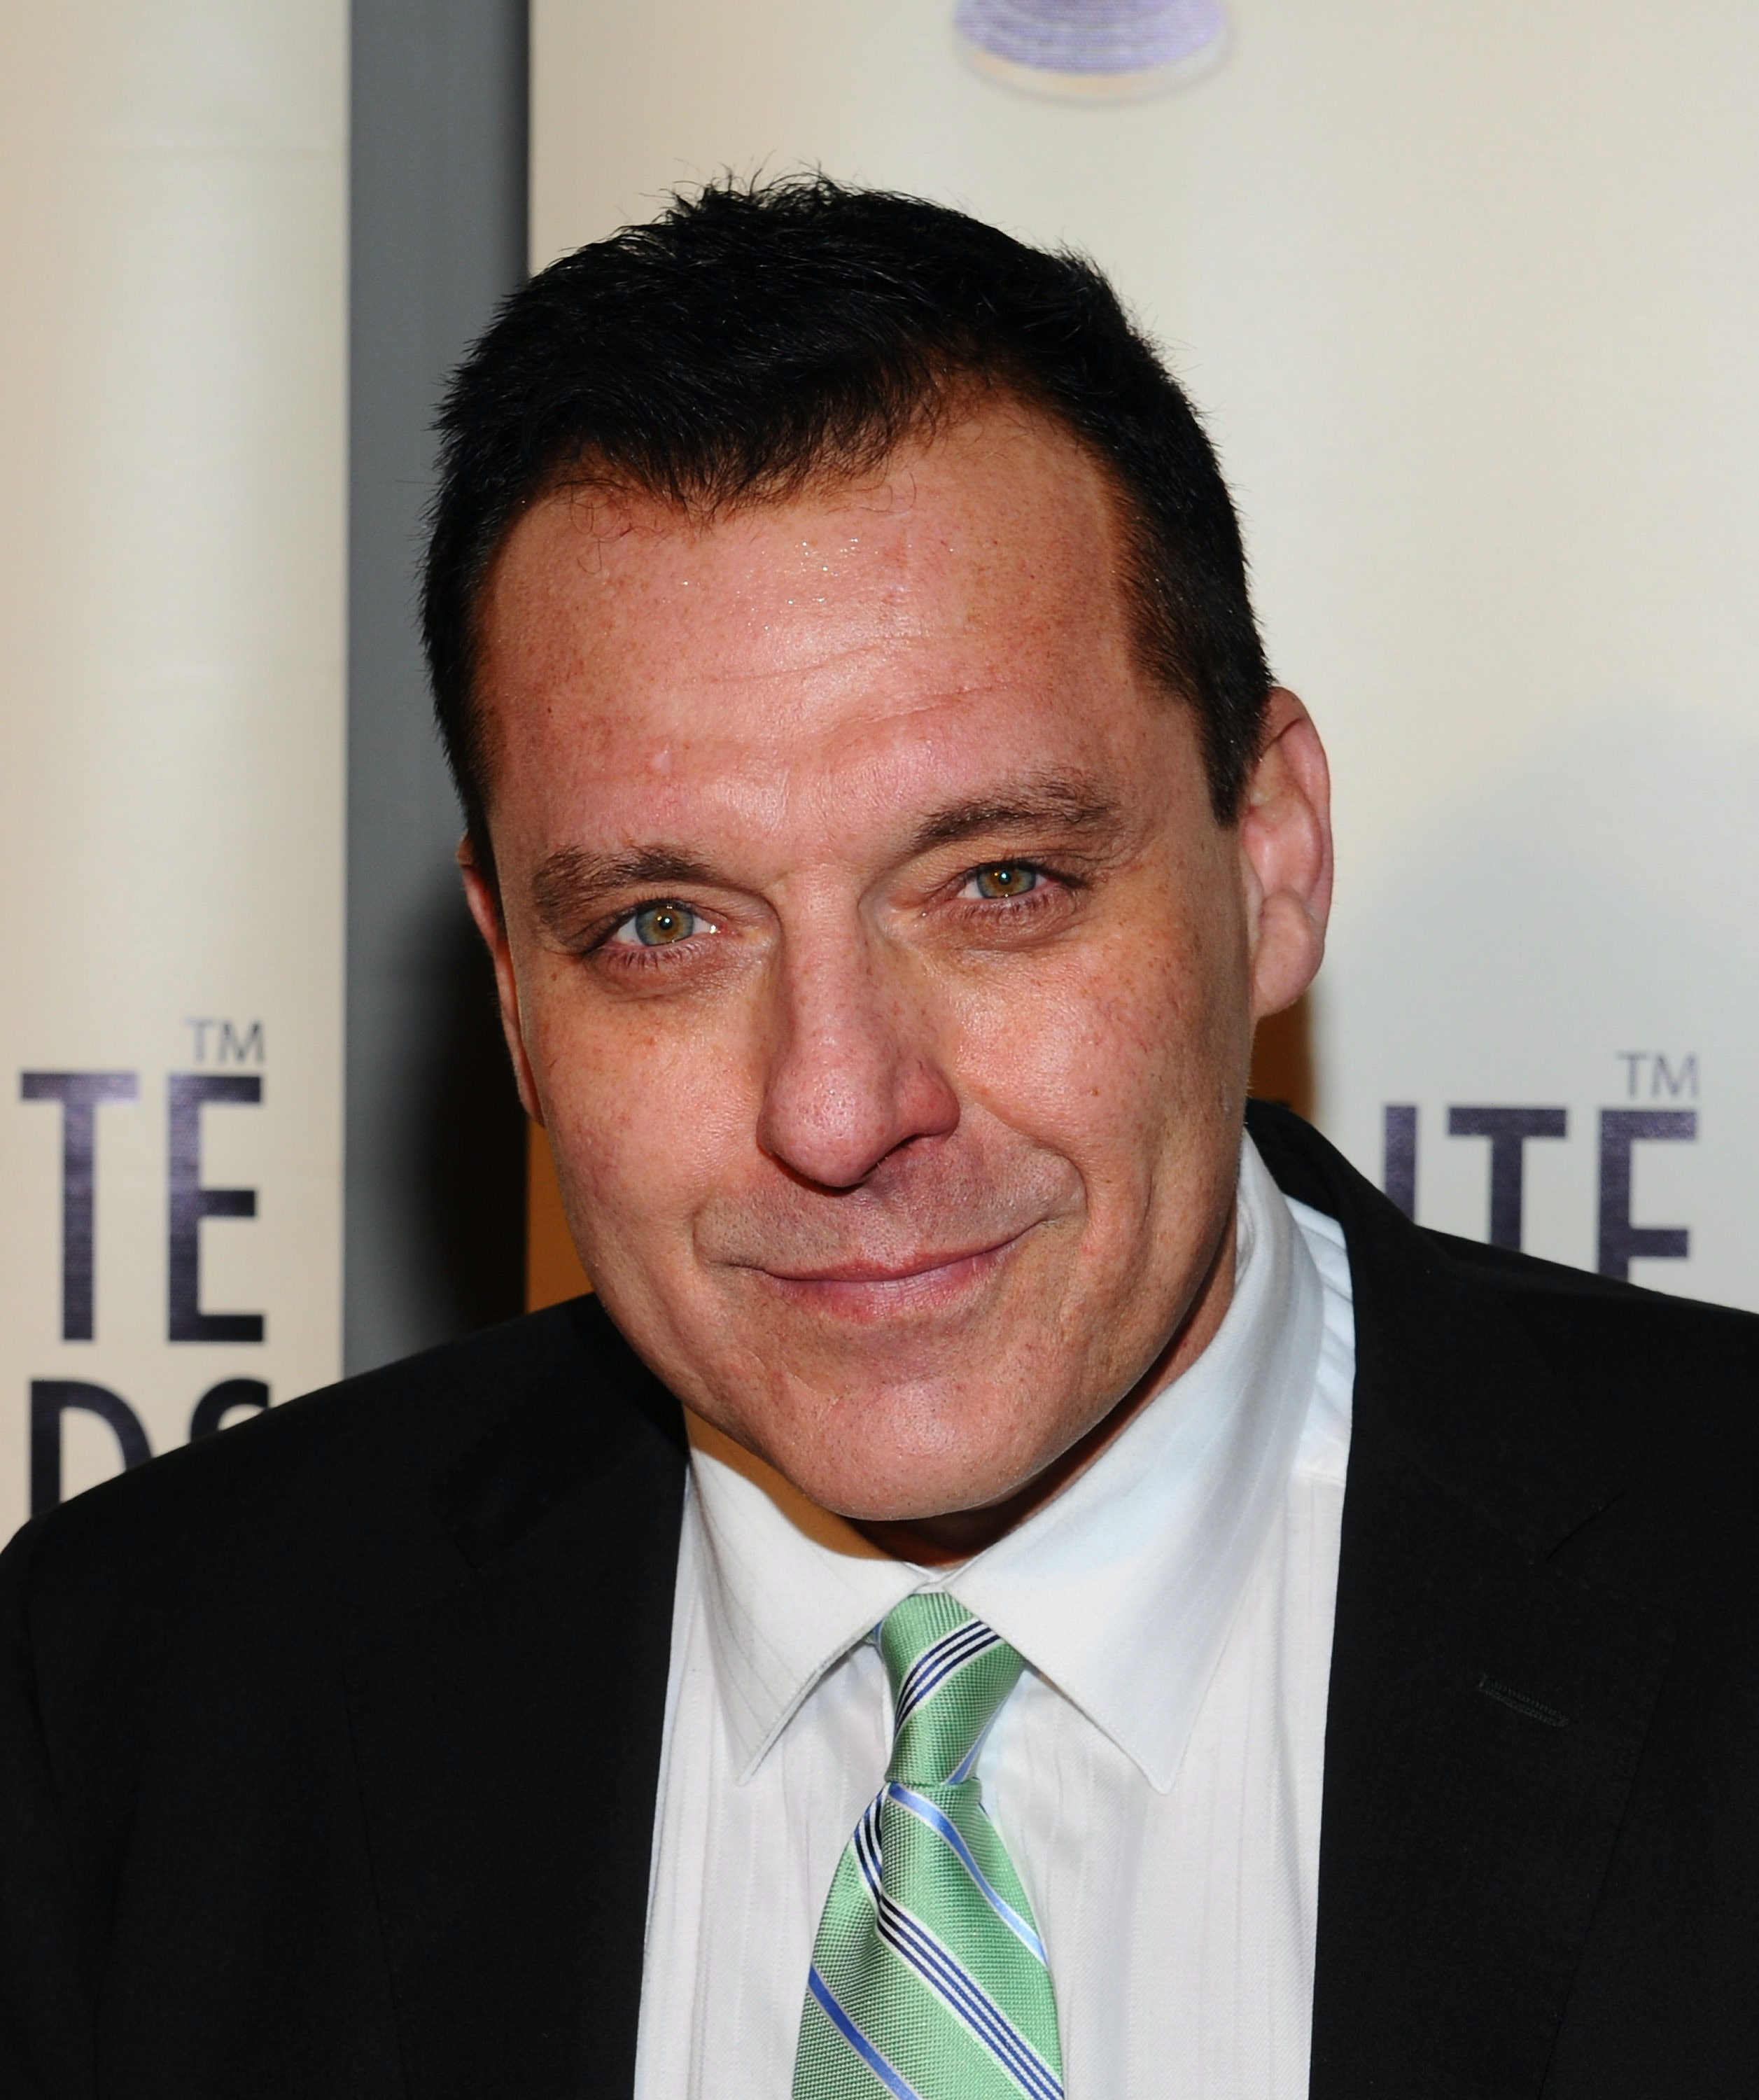 Tom Sizemore Accused Of Violating 11-Year-Old Girl